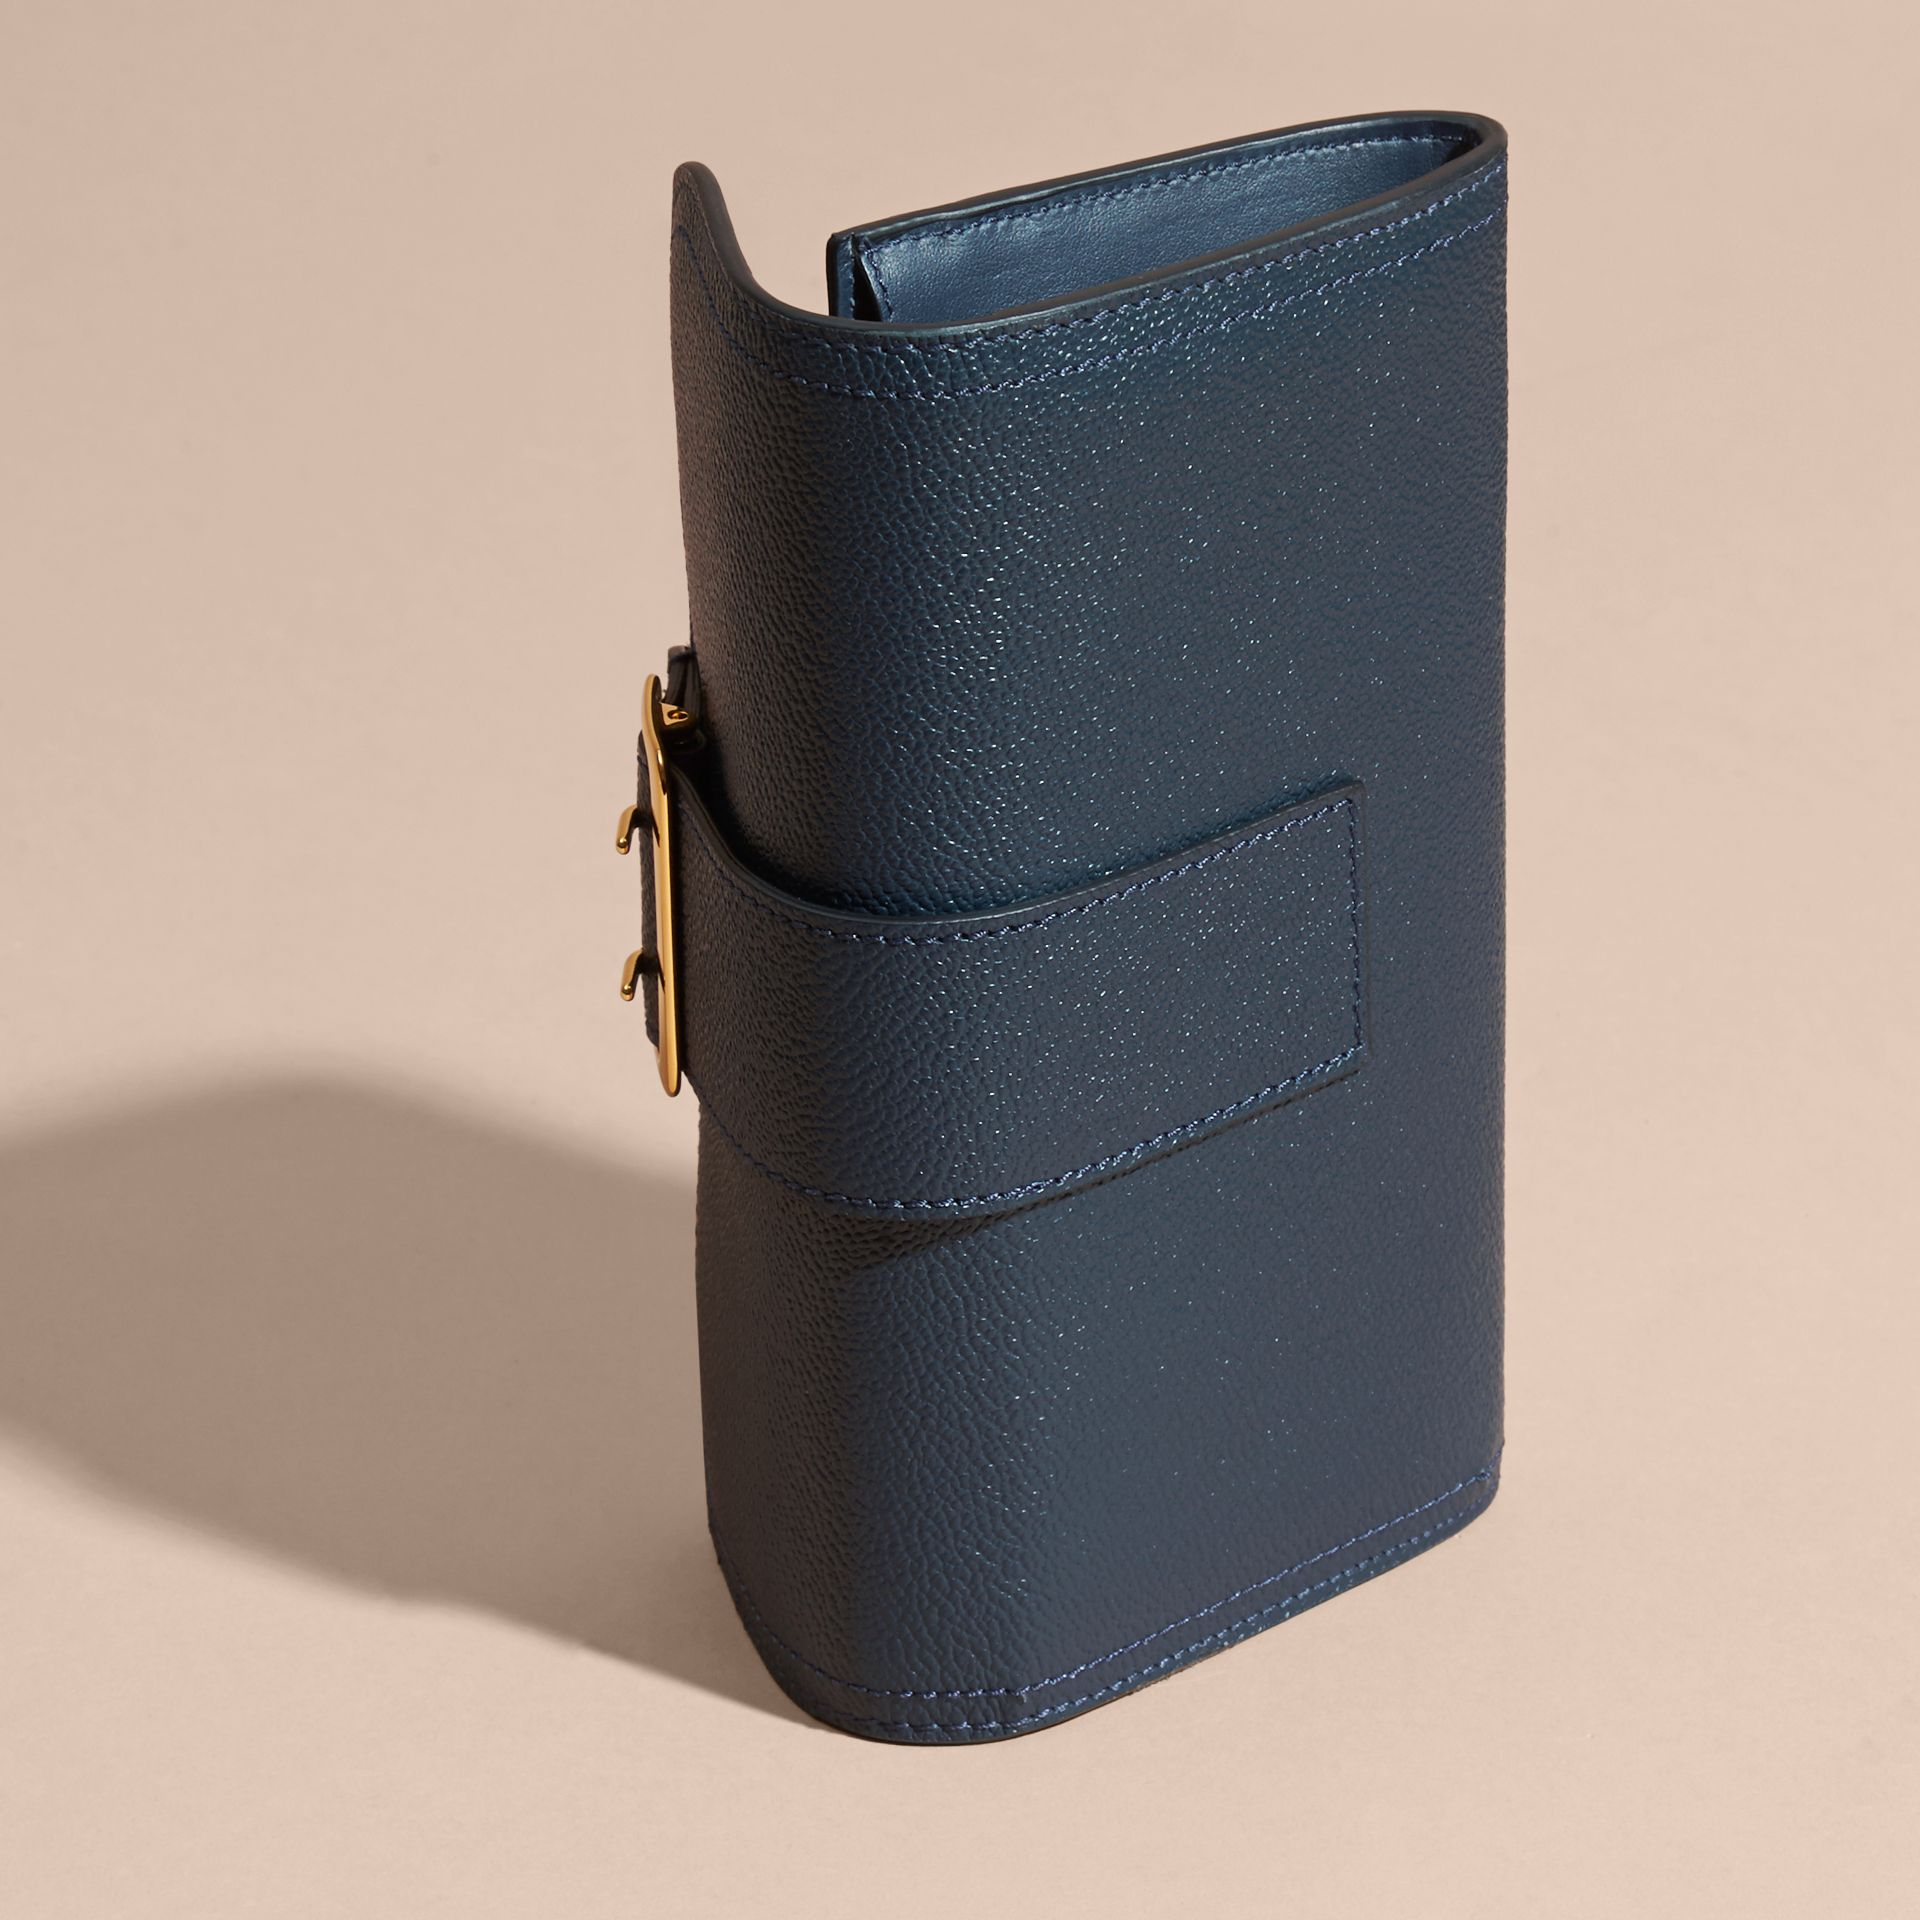 Textured Leather Continental Wallet in Blue Carbon - Women | Burberry Hong Kong - gallery image 3